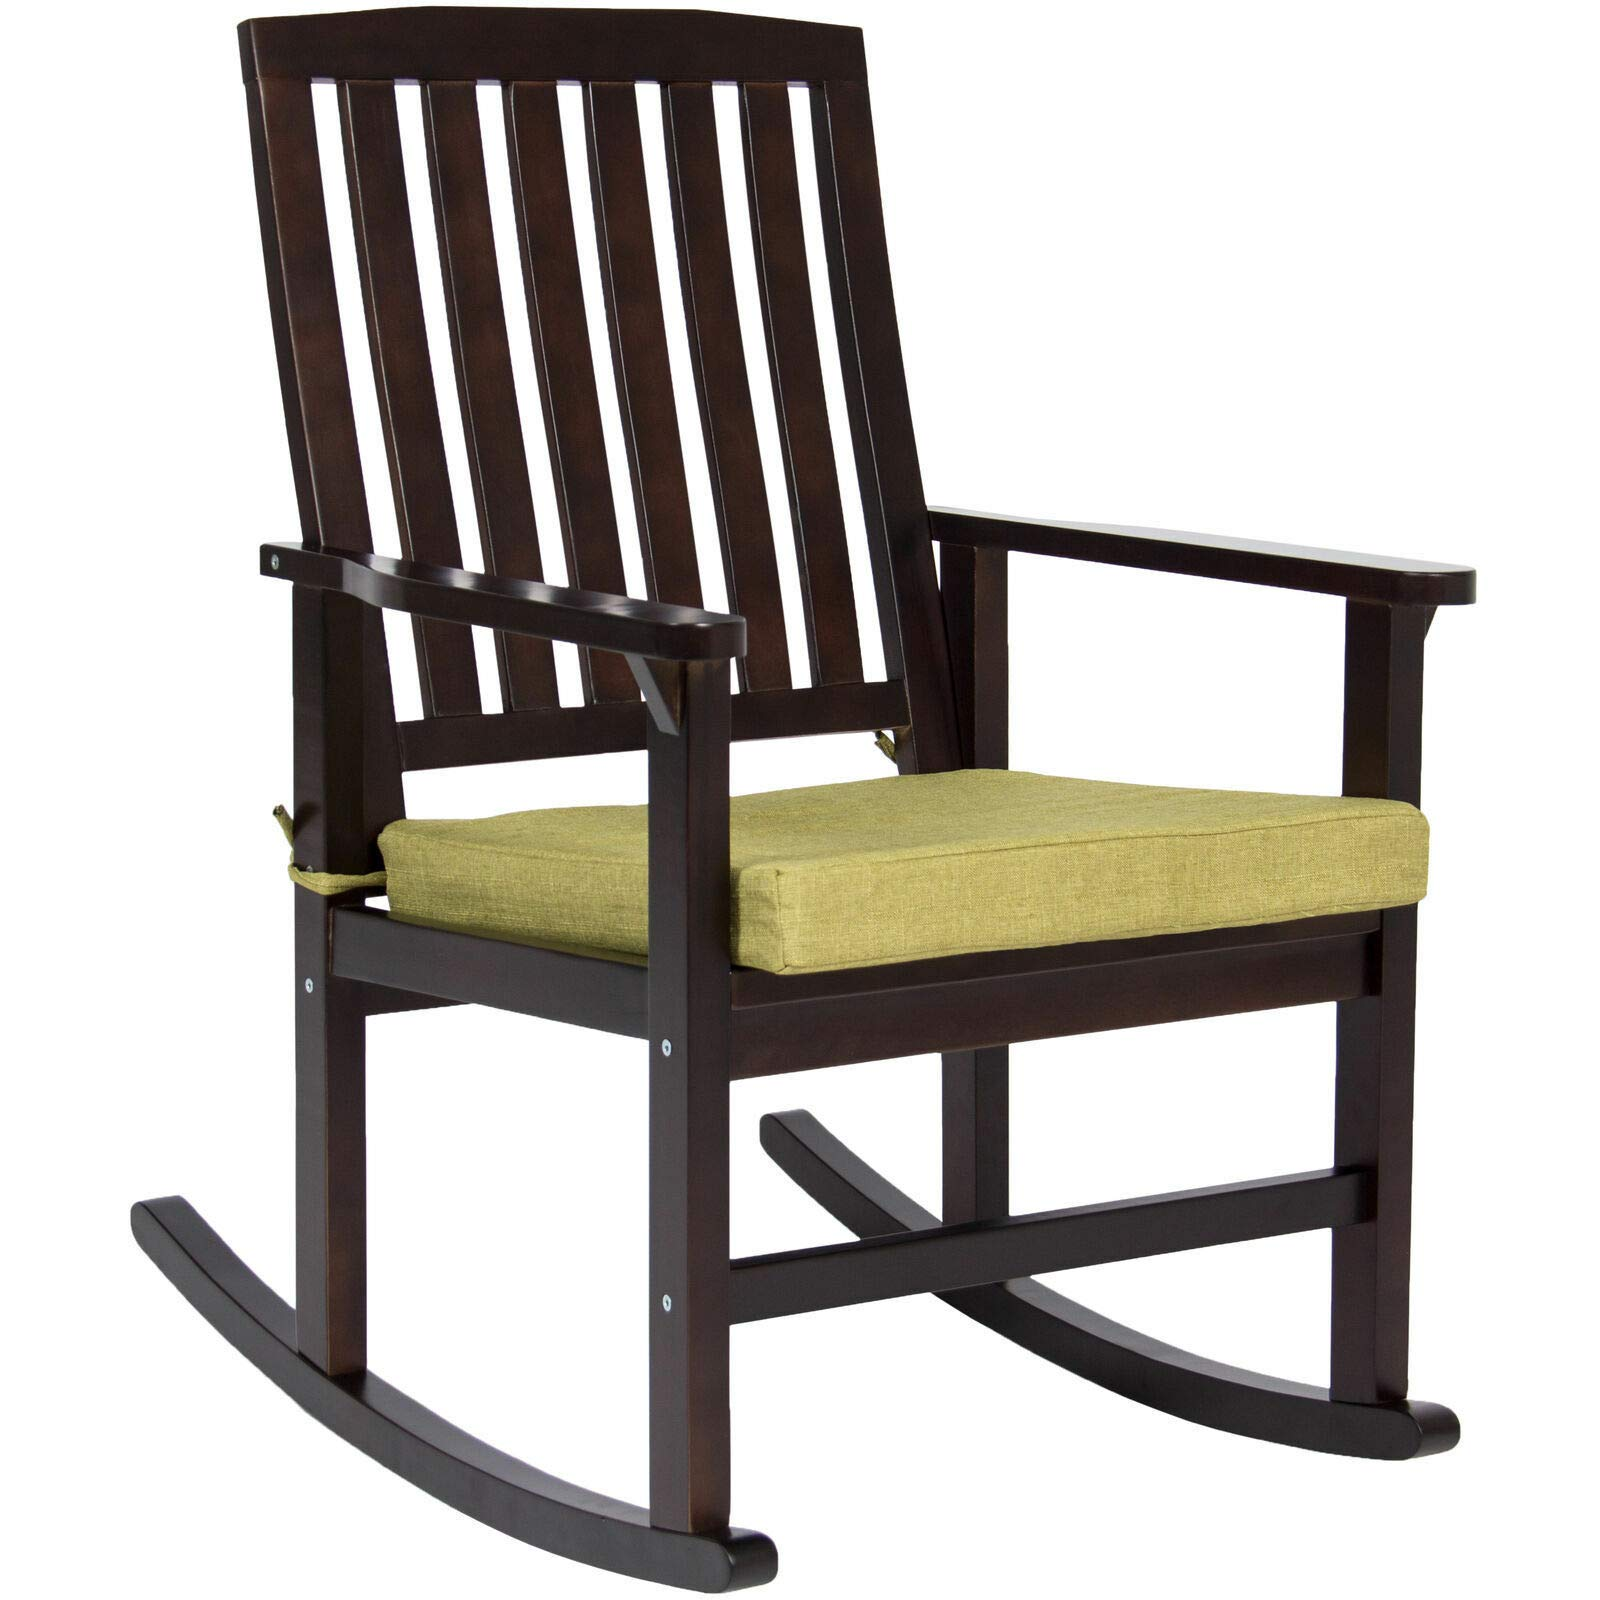 Seleq Brown Hard Wood Rocking Chair with Cushioned Seat by Seleq